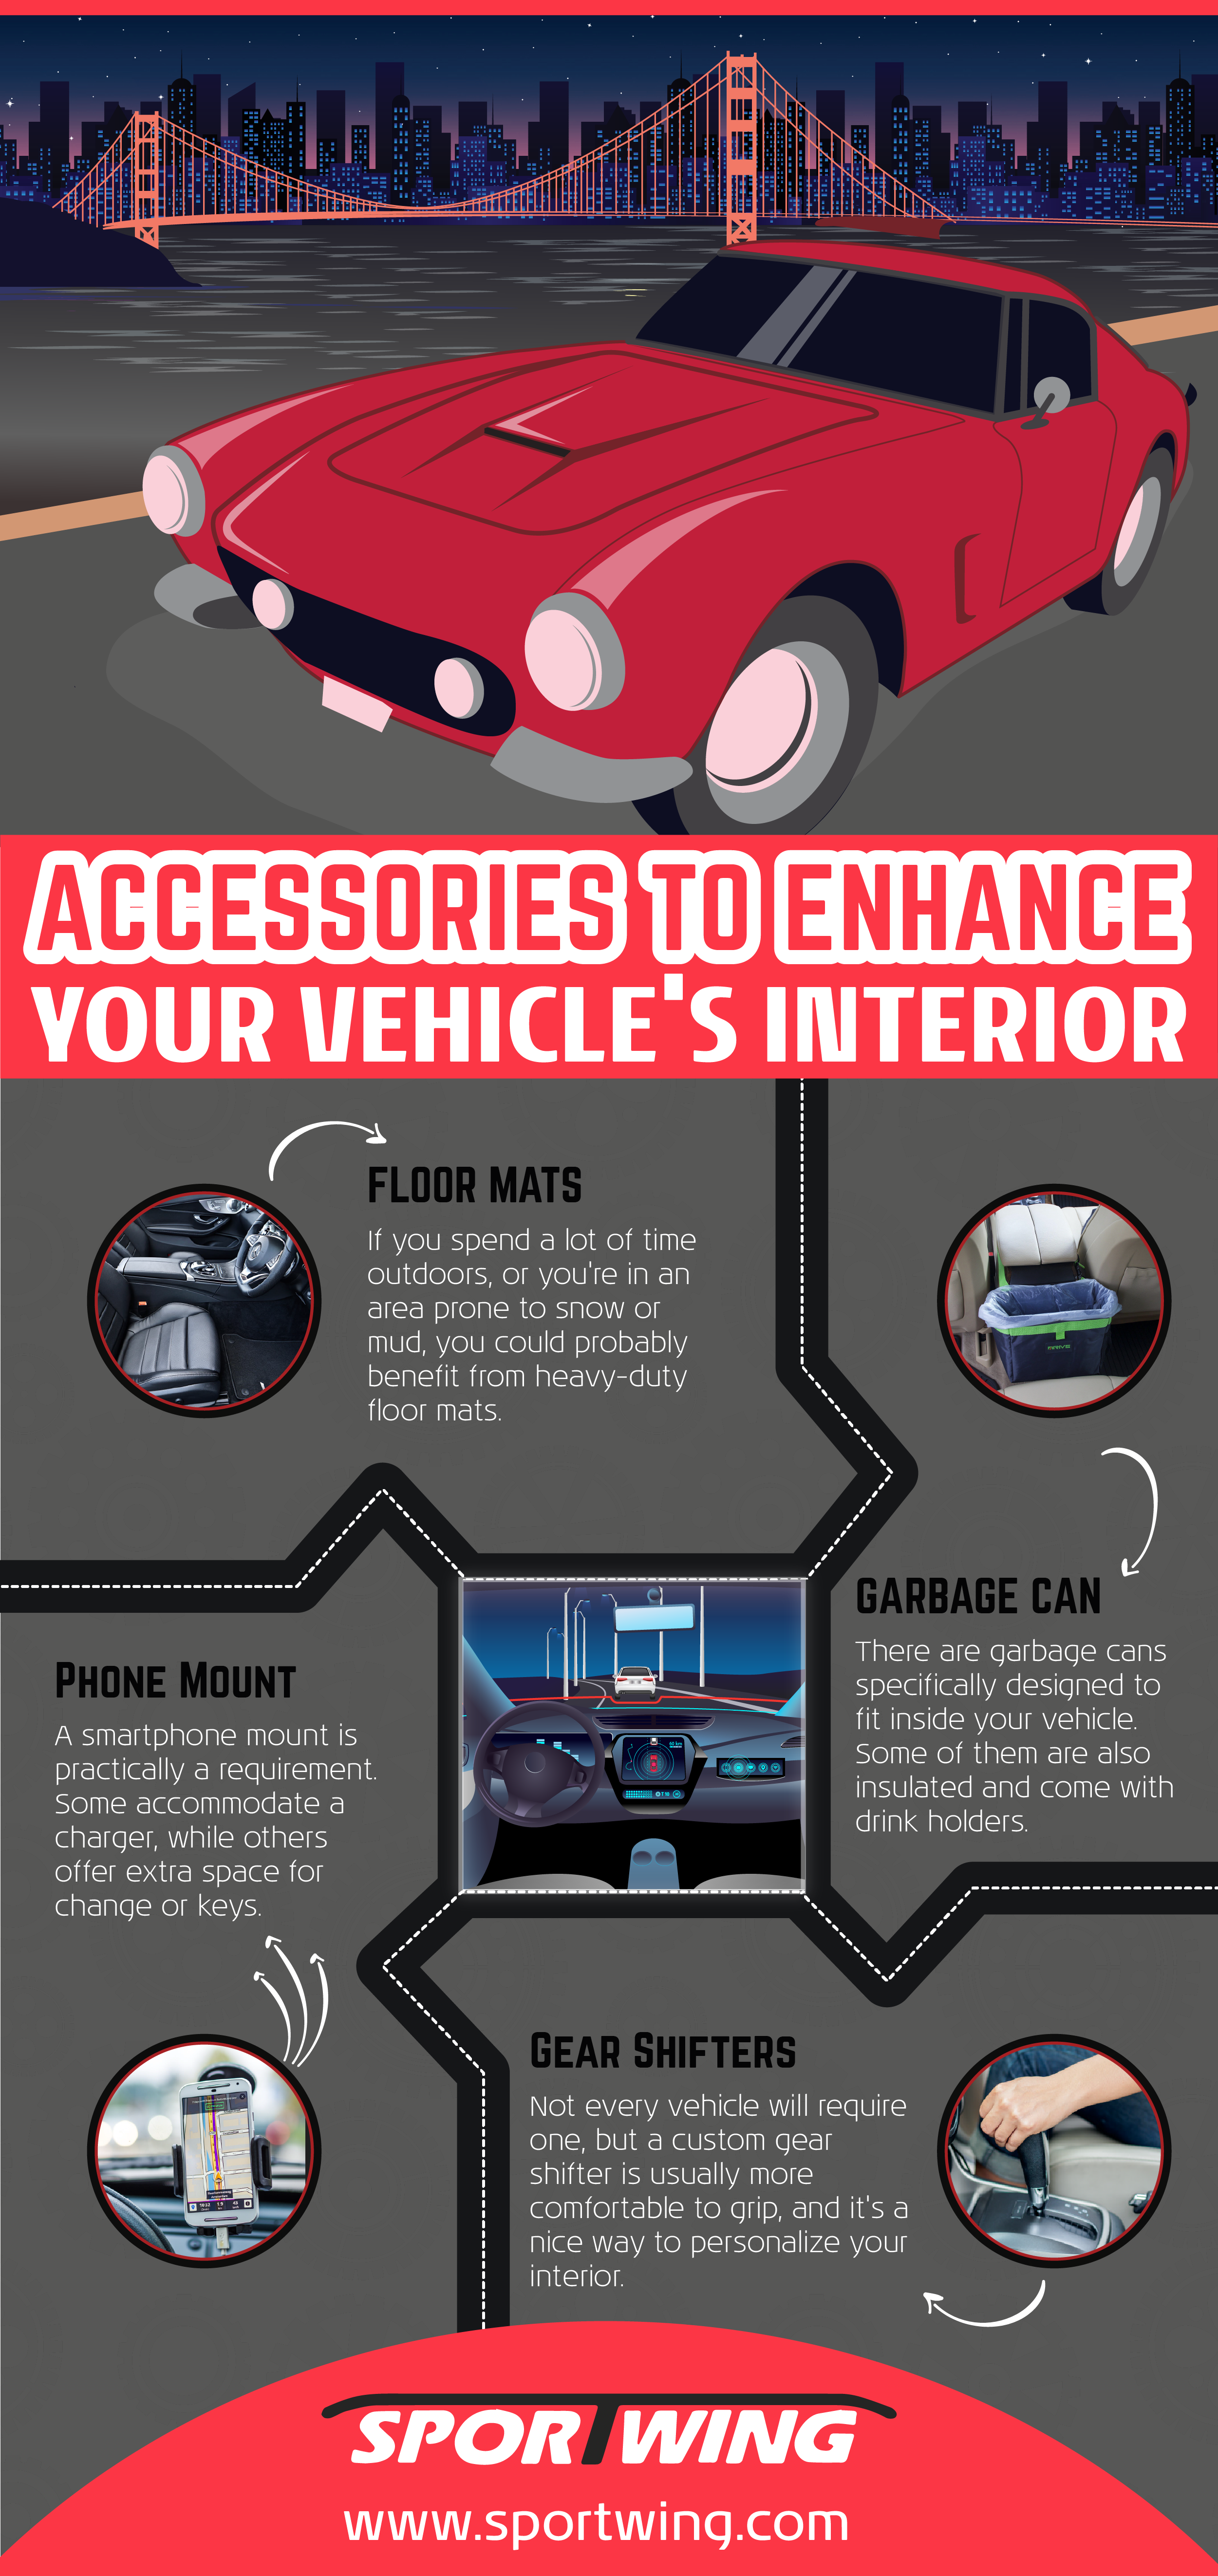 How To Enhance Your Interior With Accessories Infographic